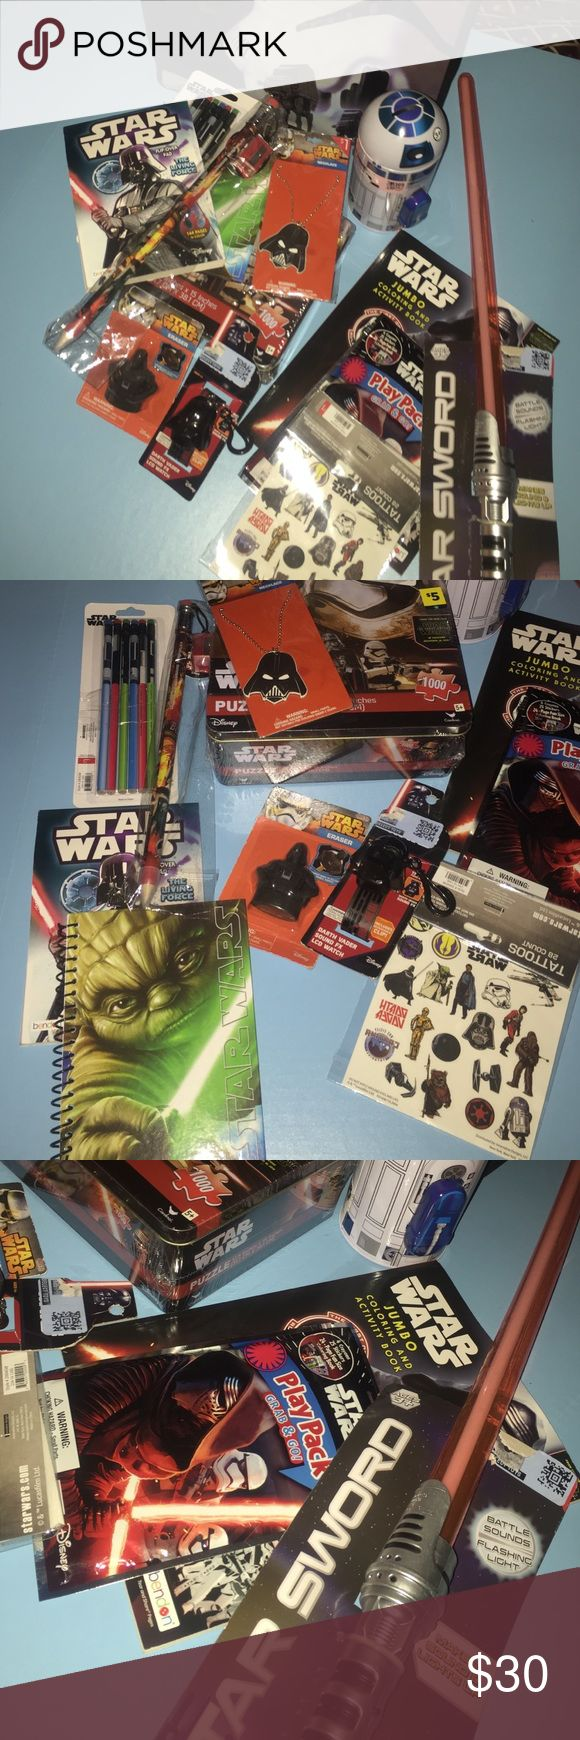 The Ultimate Star Wars Fan Bundle A Star Wars bag filled with Star Wars goodies. All new and unopened (except for pack of 6 pencils are taped in their packaging). This amazing bag contains: 6 pencils, 1 giant pencil with sharpener, SW activity pad, DV necklace, small spiral SW notebook, 1000 piece SW puzzle, DV eraser, DV watch with sound, 28 count tattoos, grab and go play pack with fun size crayons, stickers, and mini coloring book, full size coloring book, R2D2 metal bank, star sword with…